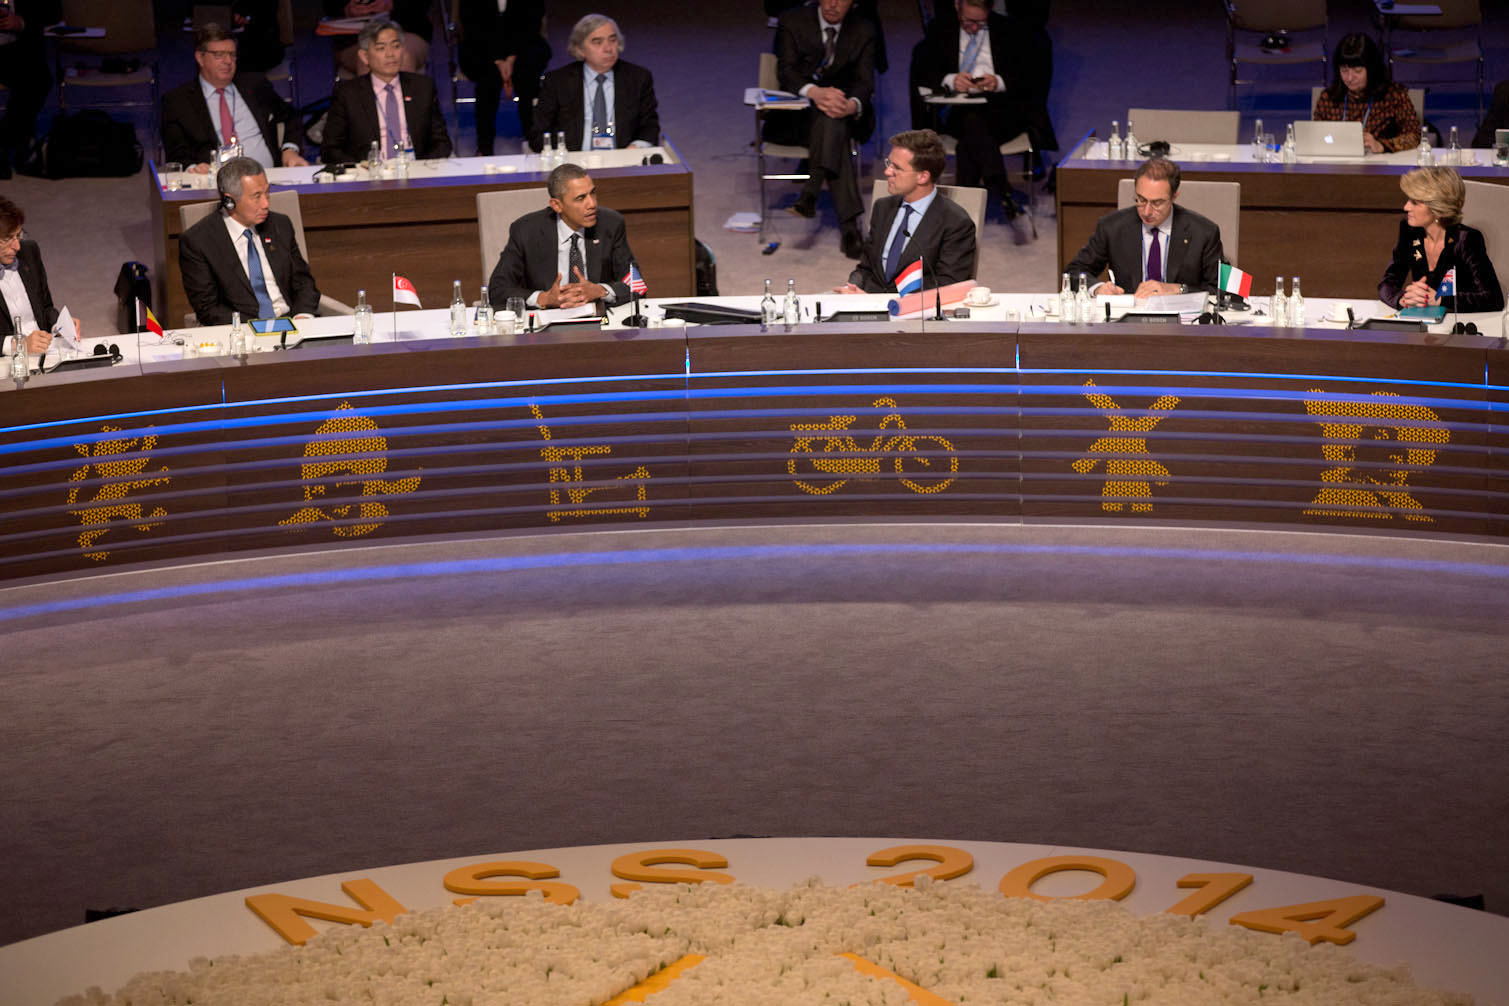 President Barack Obama participates in a third plenary session during the 2014 Nuclear Security Summit at the World Forum, The Hague, the Netherlands